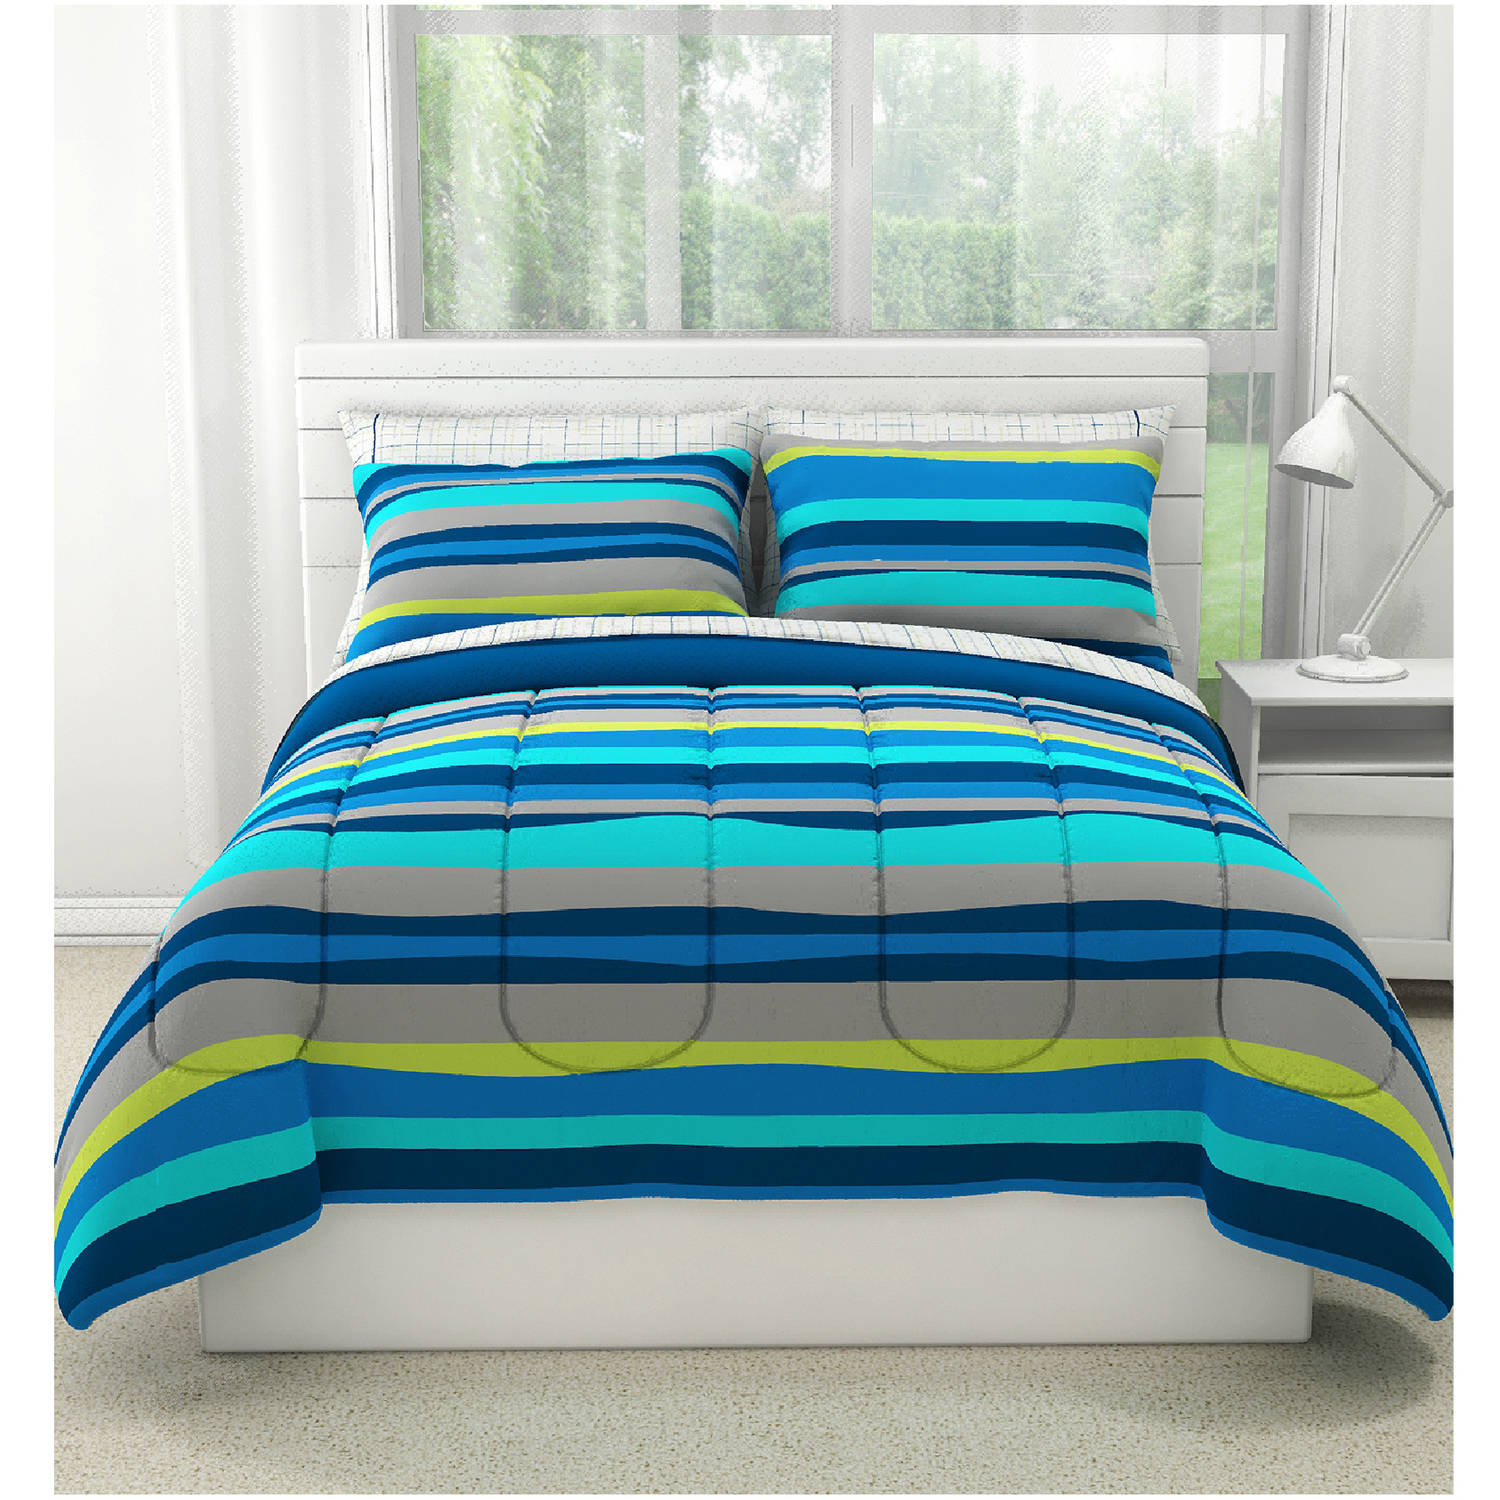 Your Zone Blue Pacific Stripe 2-piece Comforter Set, Twin